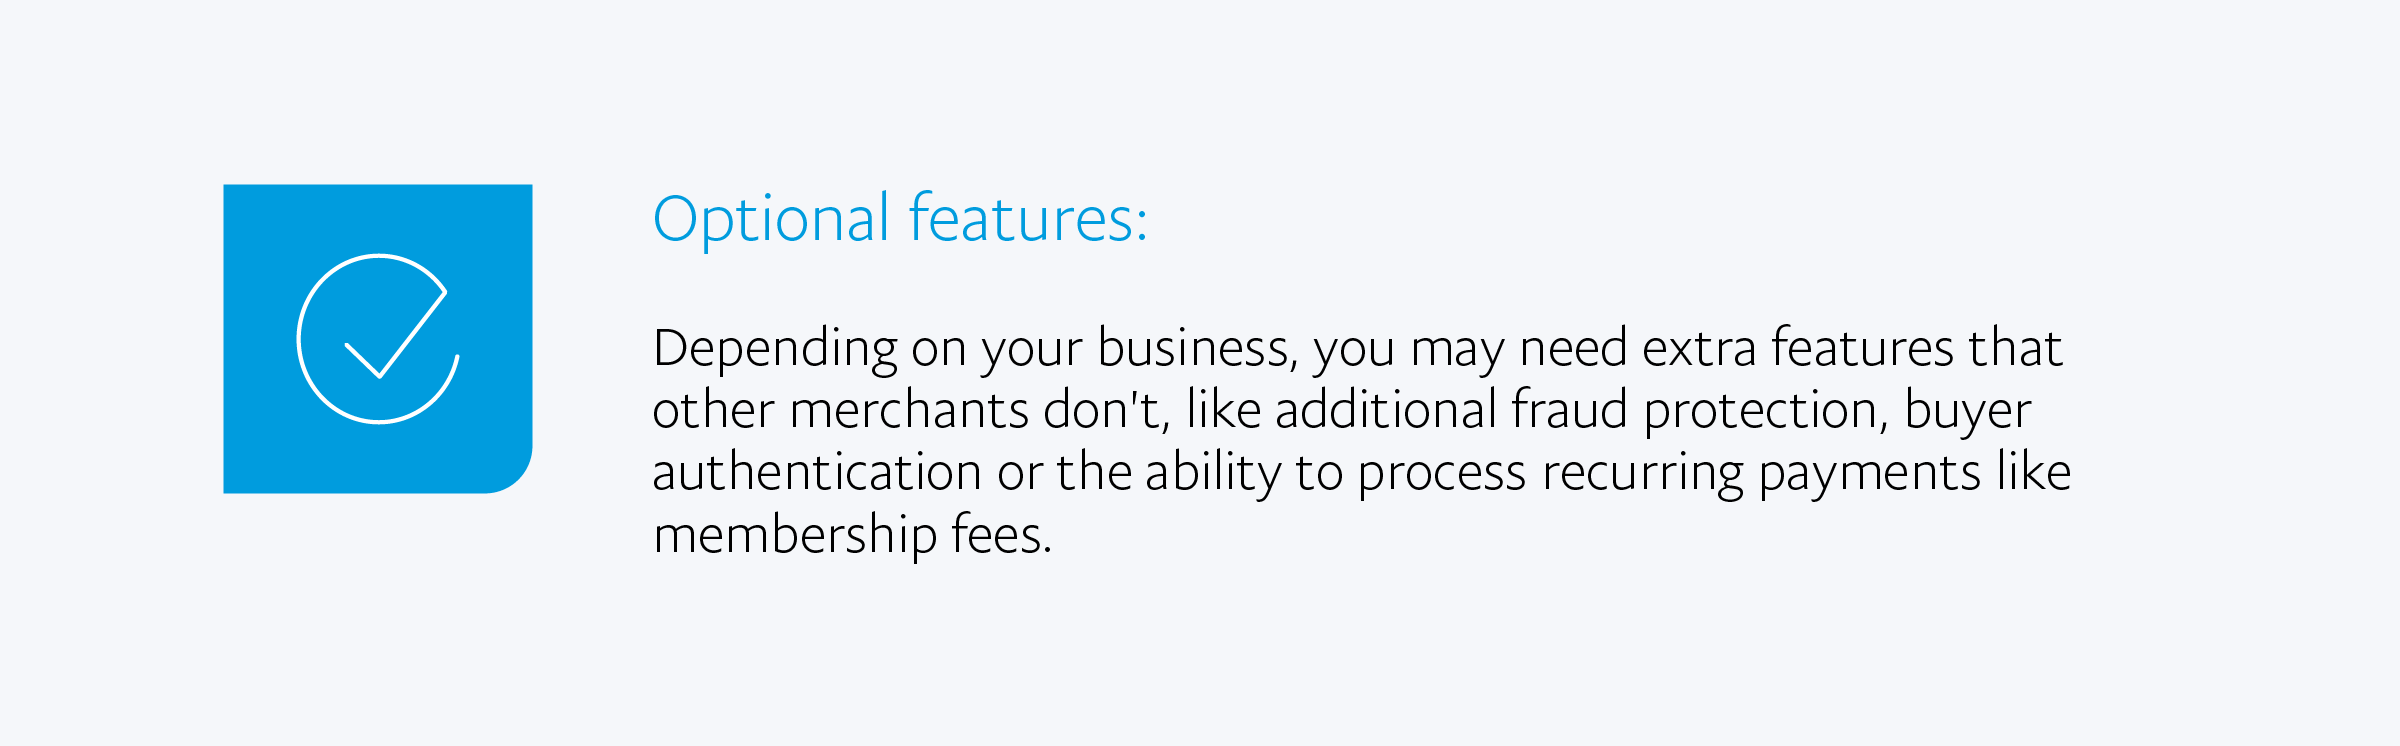 Optional features: Depending on your business, you may need extra features that other merchants don't, like additional fraud protection, buyer authentication or the ability to process recurring payments like membership fees.